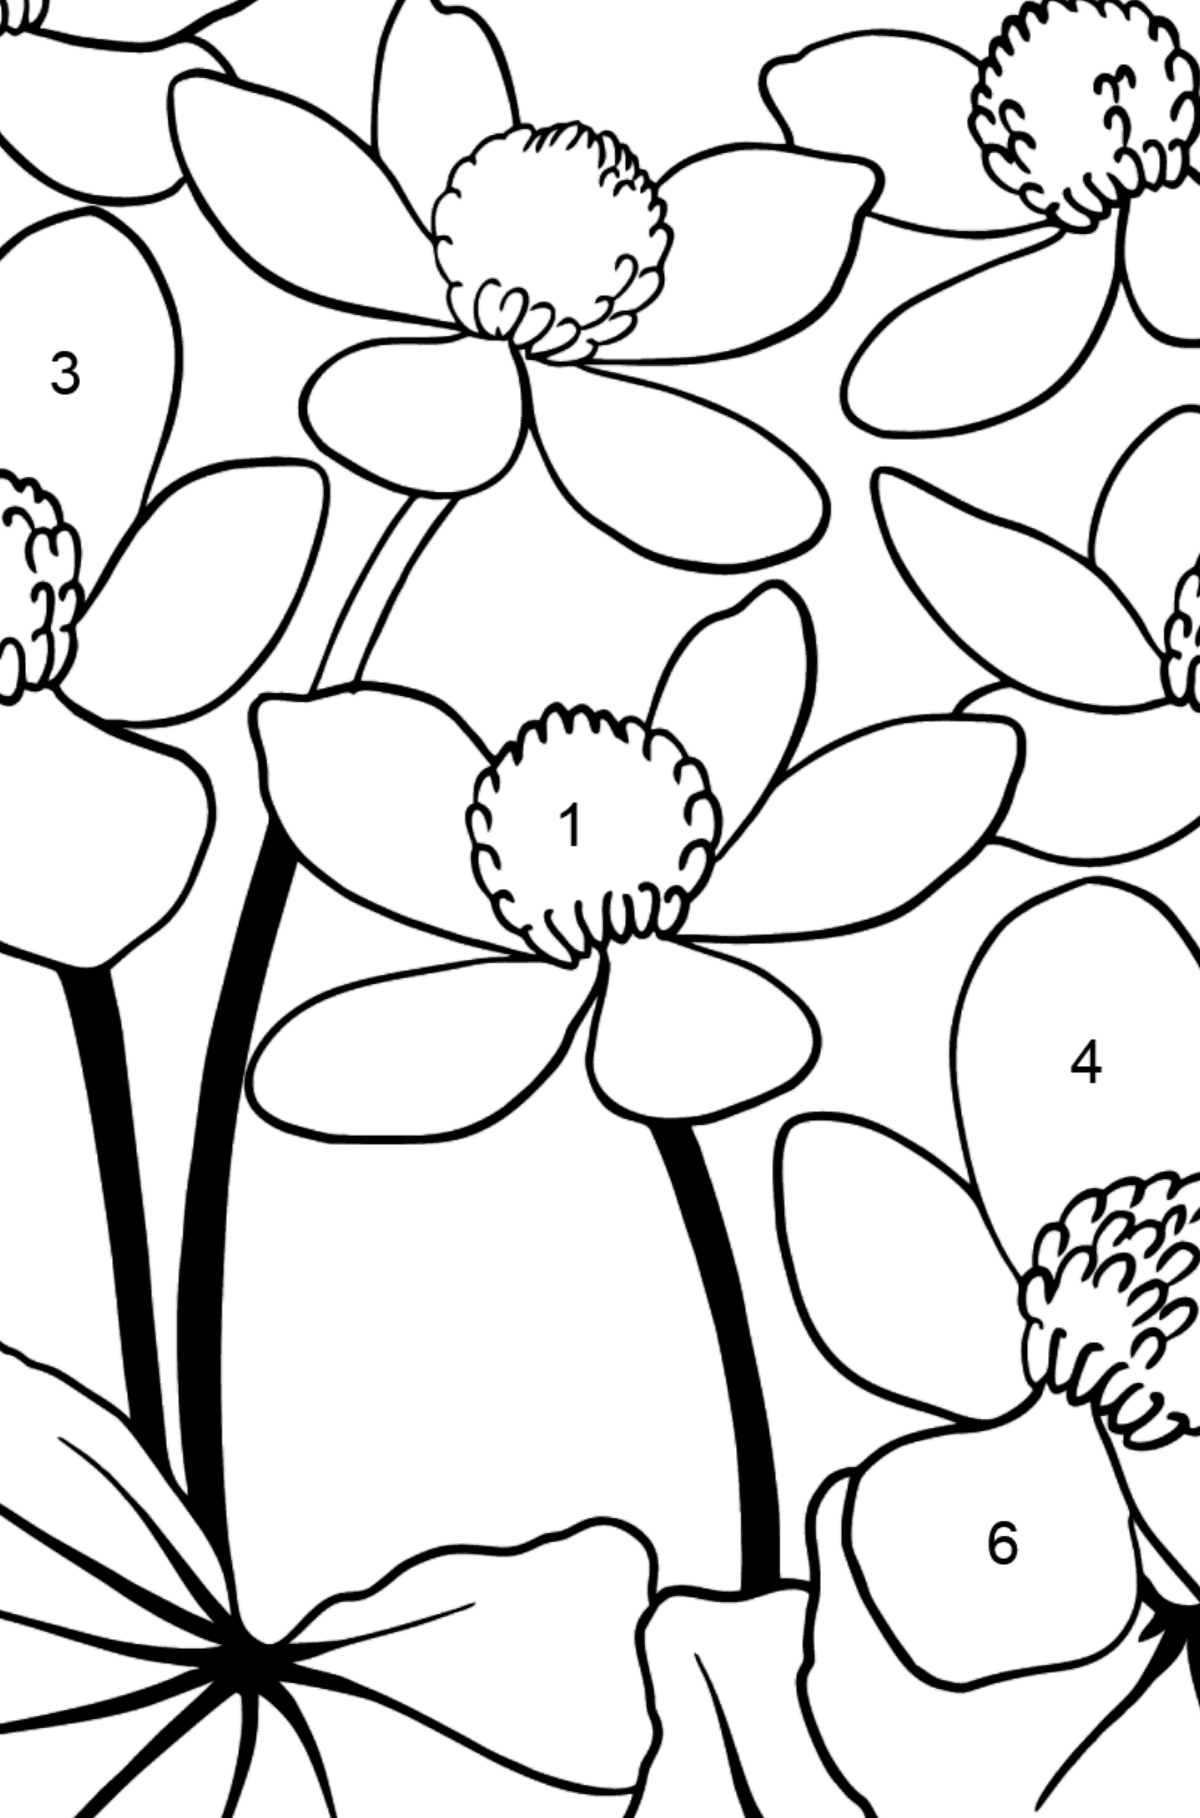 Flower Coloring Page - A Yellow and Red Marsh Marigold - Coloring by Numbers for Kids